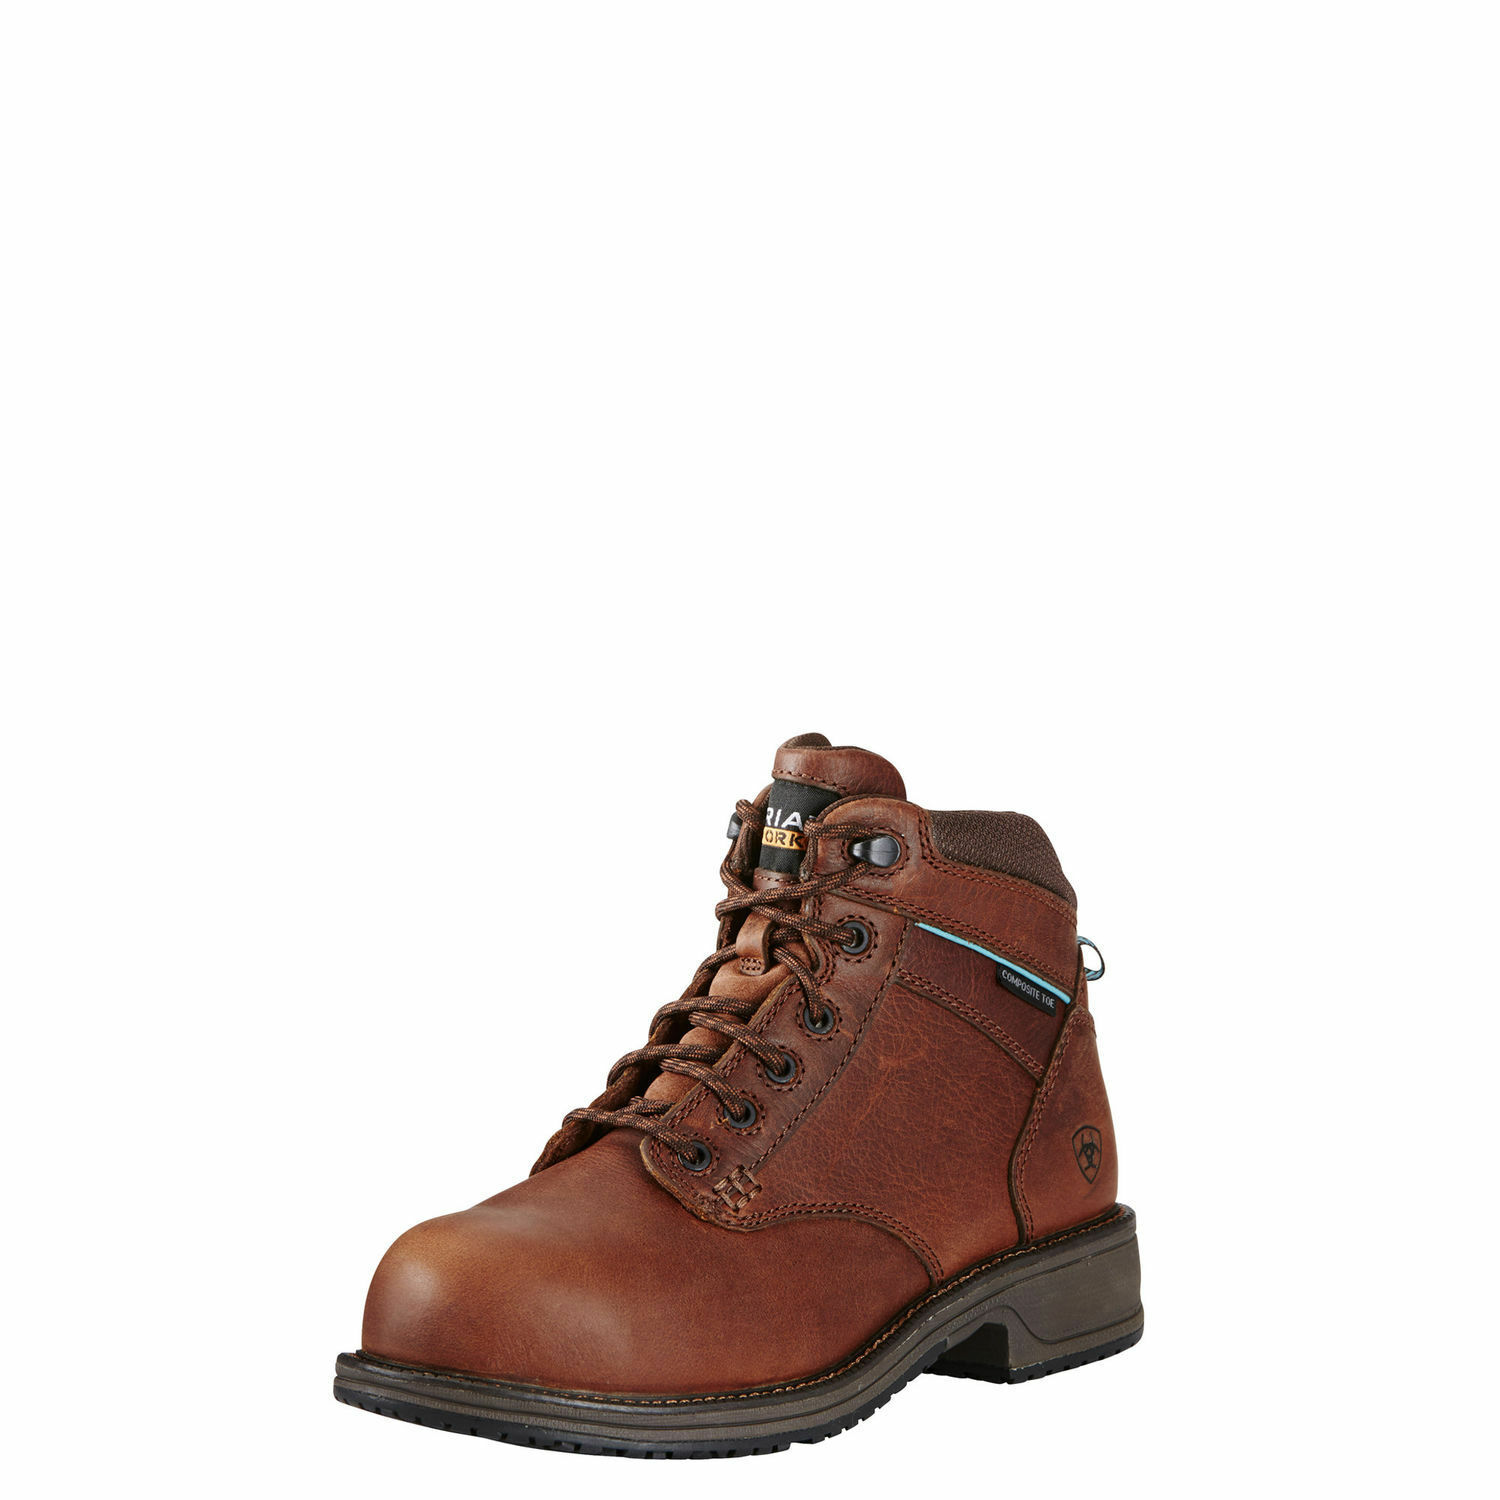 Ariat Women's Brown Casual Composite Toe Lace Up Work Boots 10020097  SALE